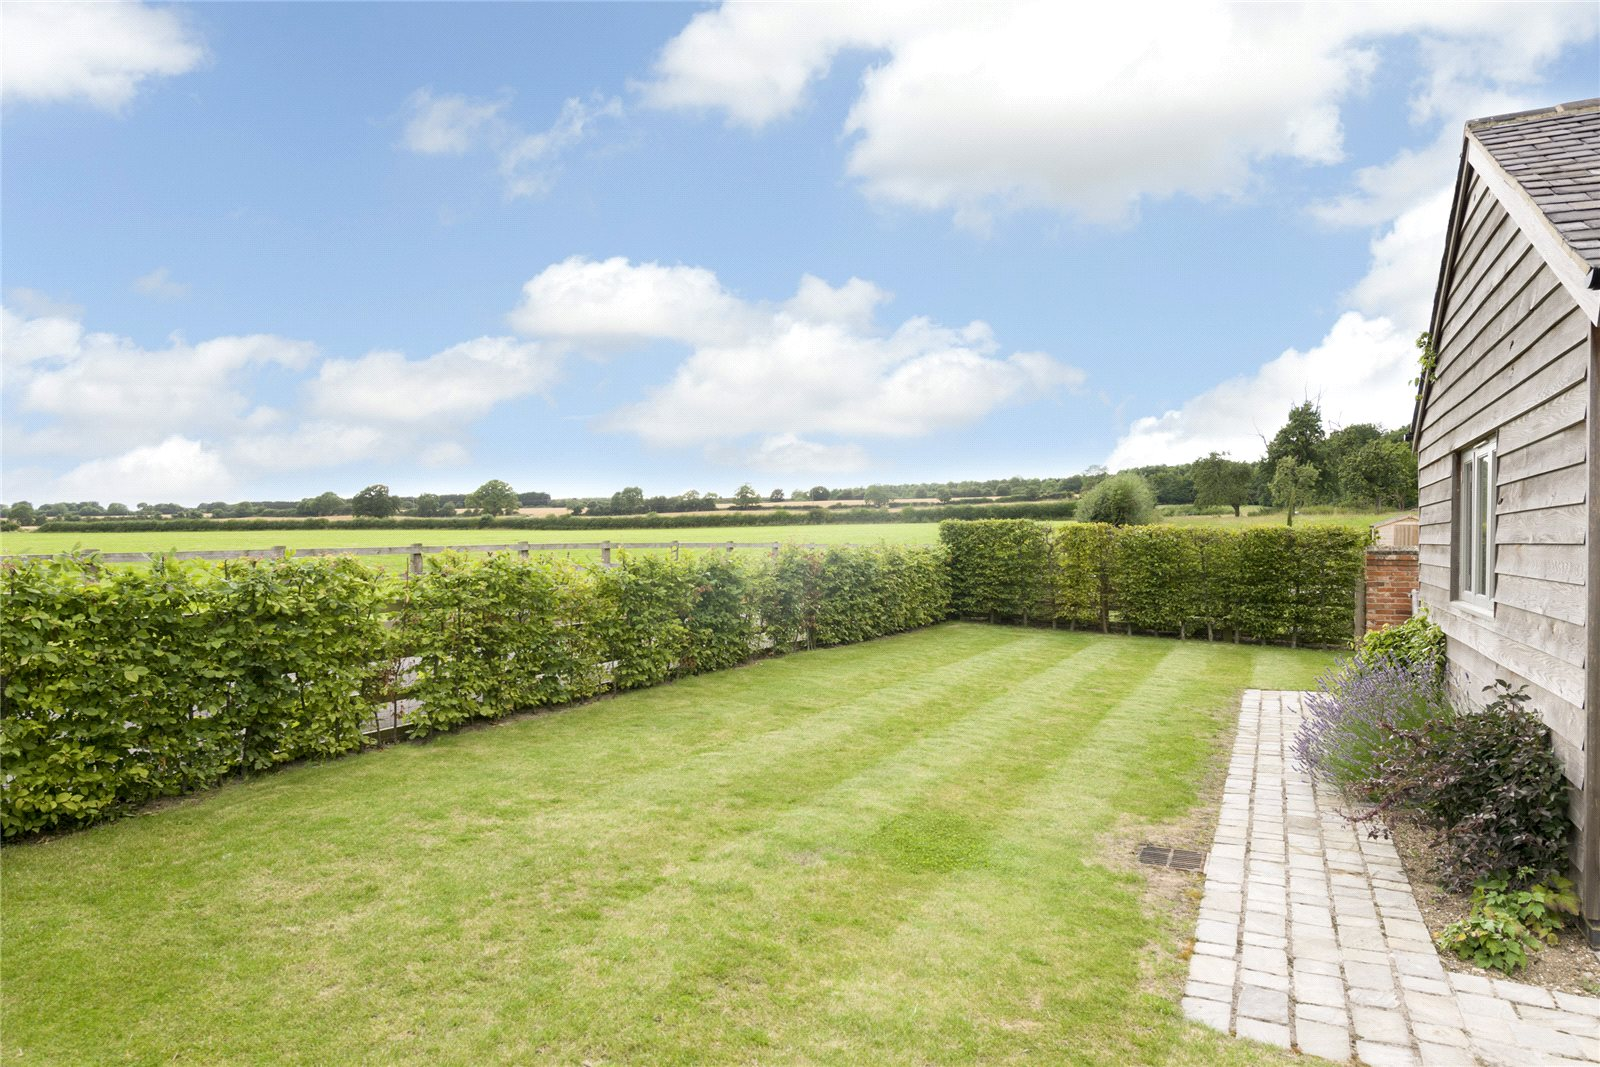 Additional photo for property listing at Chadshunt, Nr Leamington Spa, South Warwickshire, CV35 英格兰